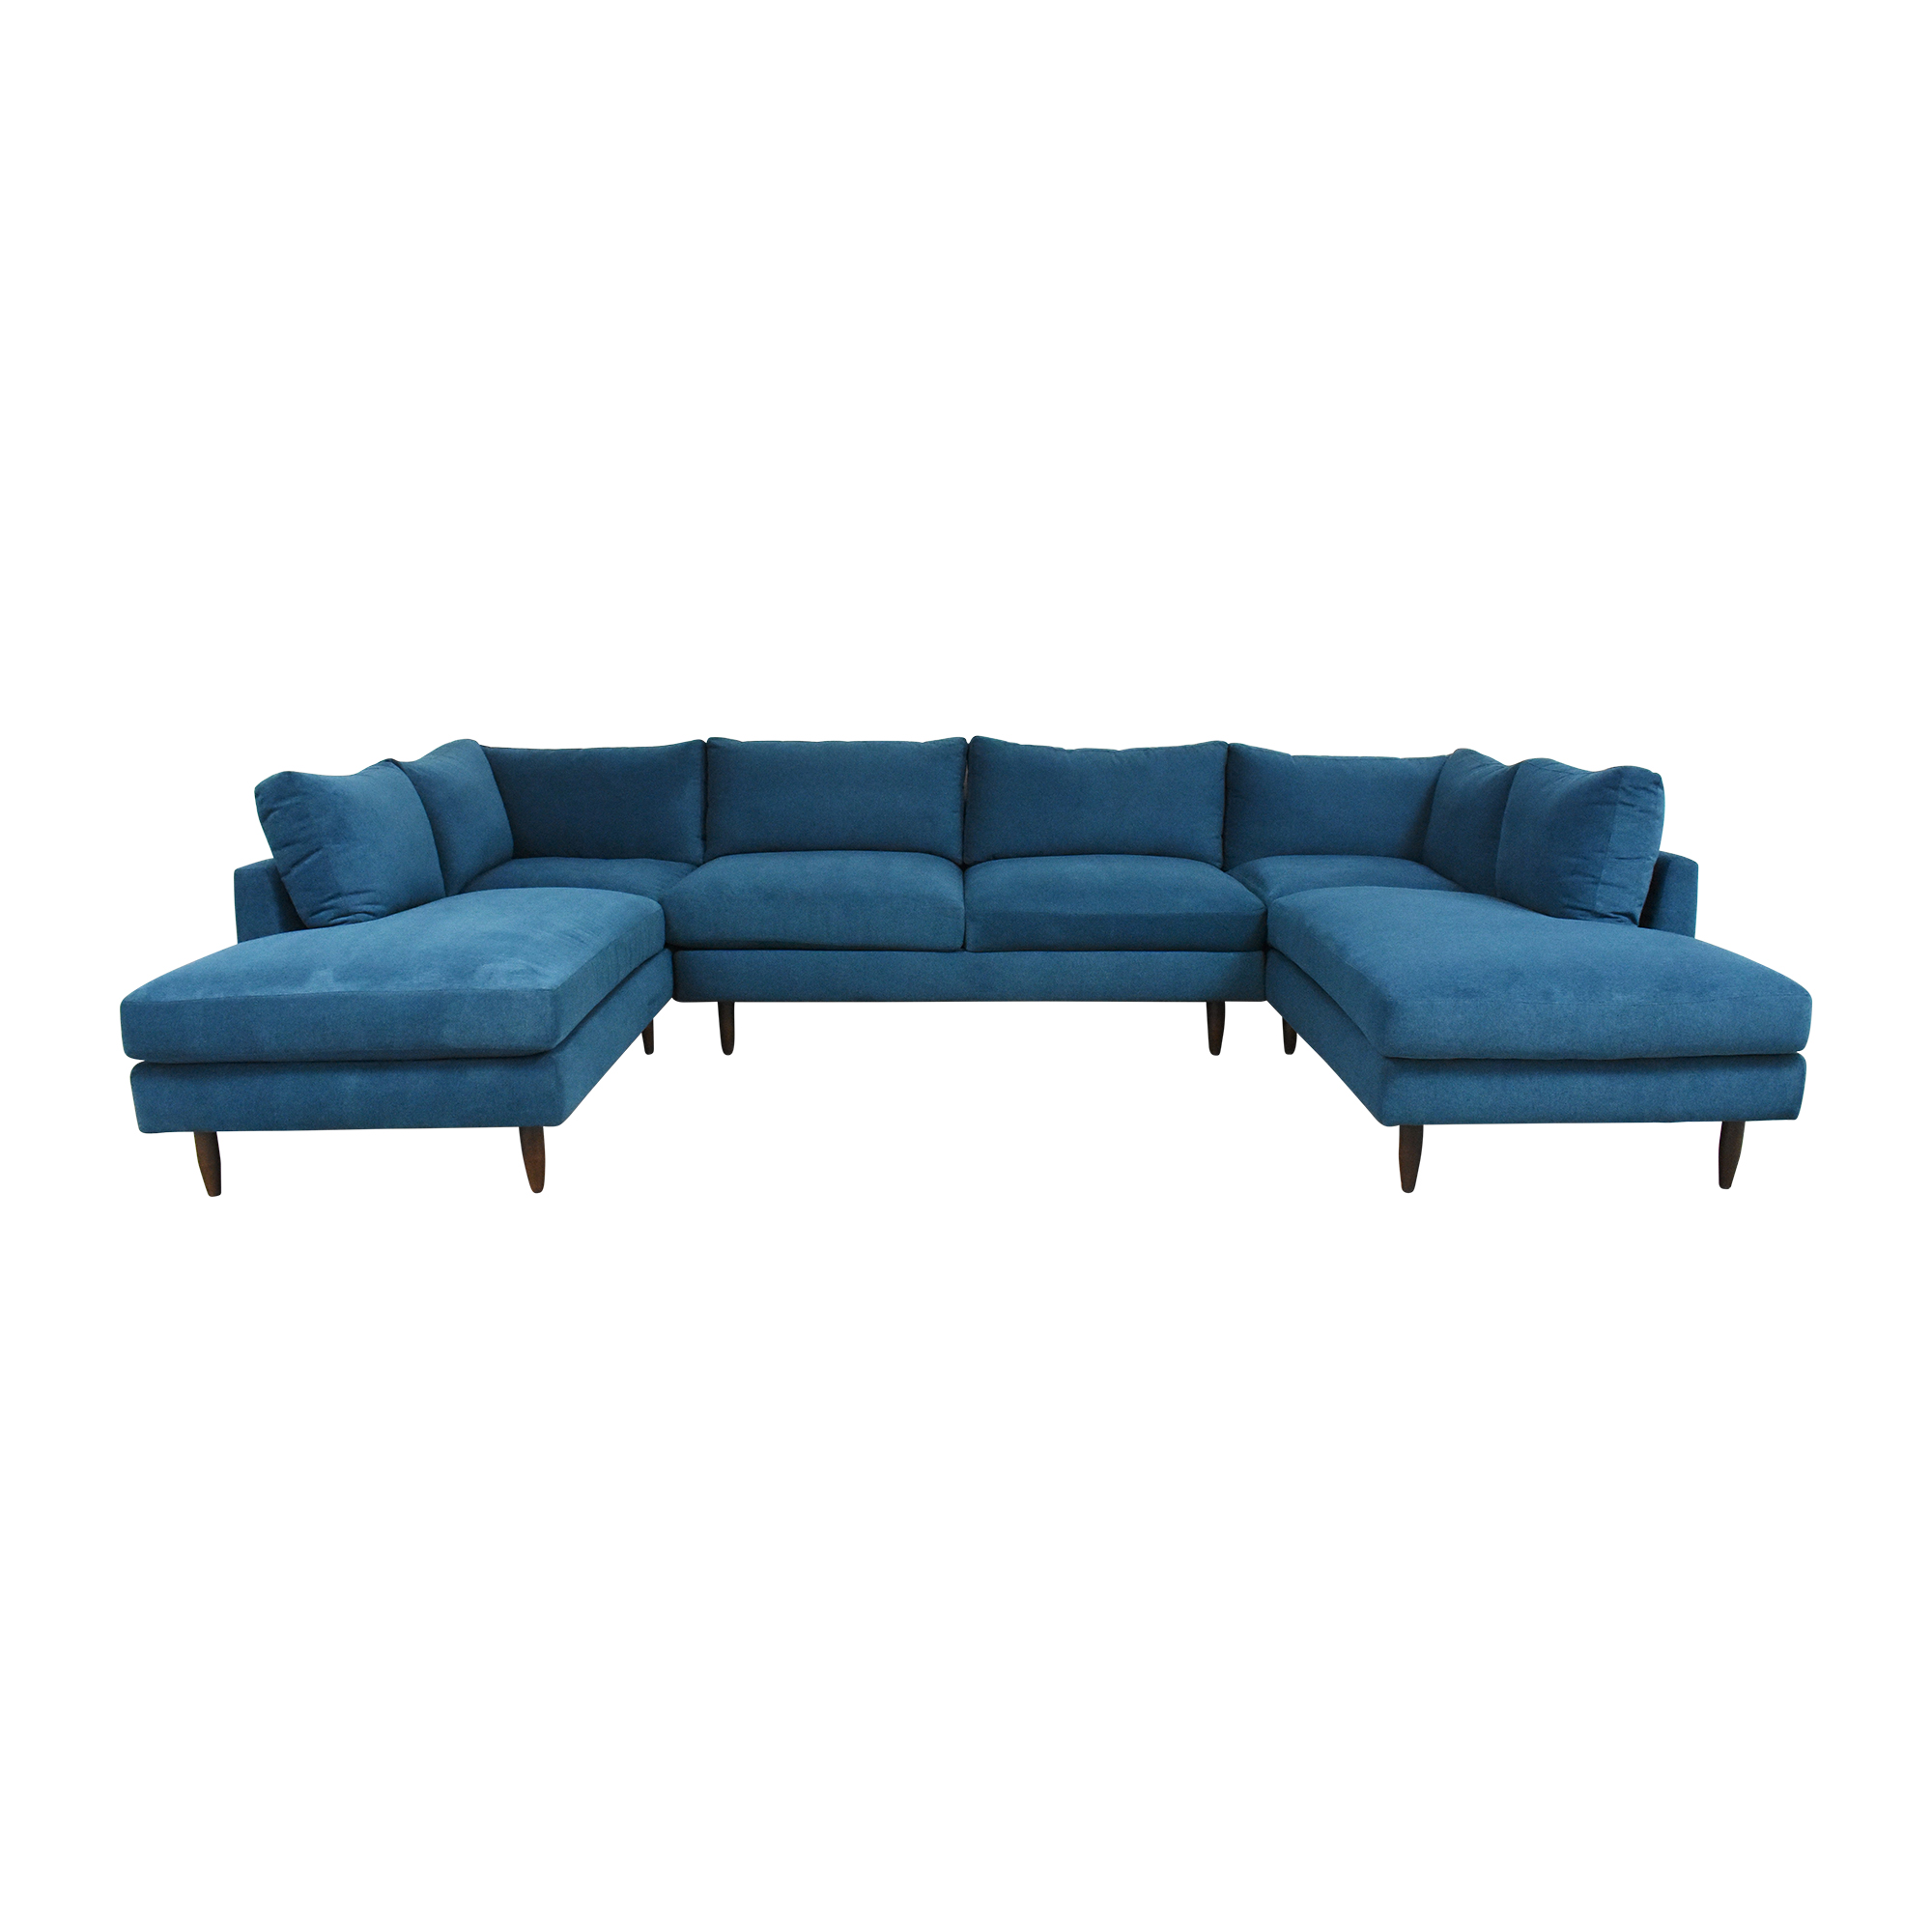 BenchMade Modern BenchMade Modern Crowd Pleaser Double Chaise Sectional U Sofa discount